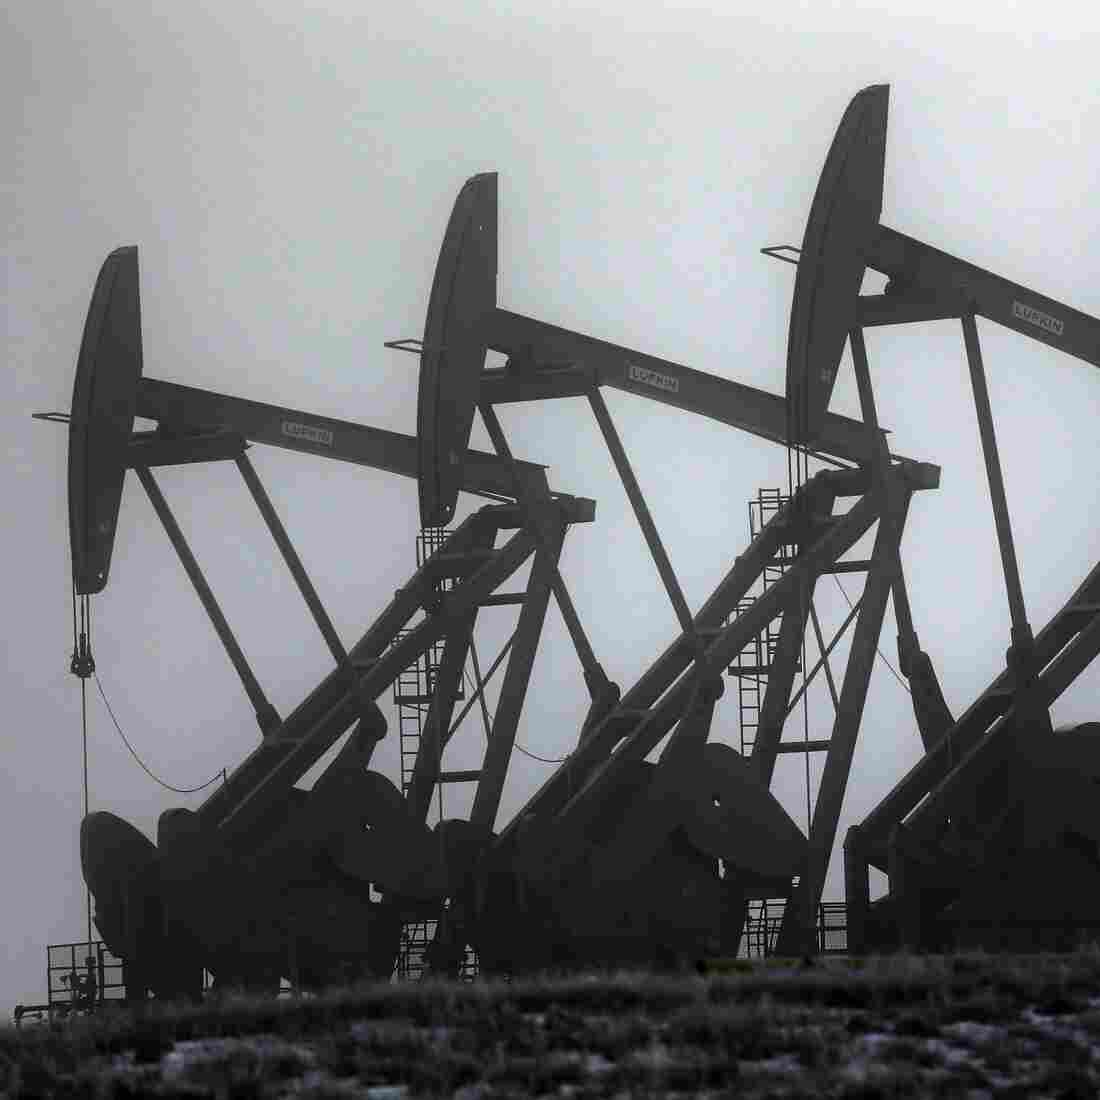 Oil pump jacks in Williston, N.D., in December. Oil prices have been on the rise, but some analysts say the global economic slowdown, fracking and the rise of alternative energy will mean less demand and lower prices.